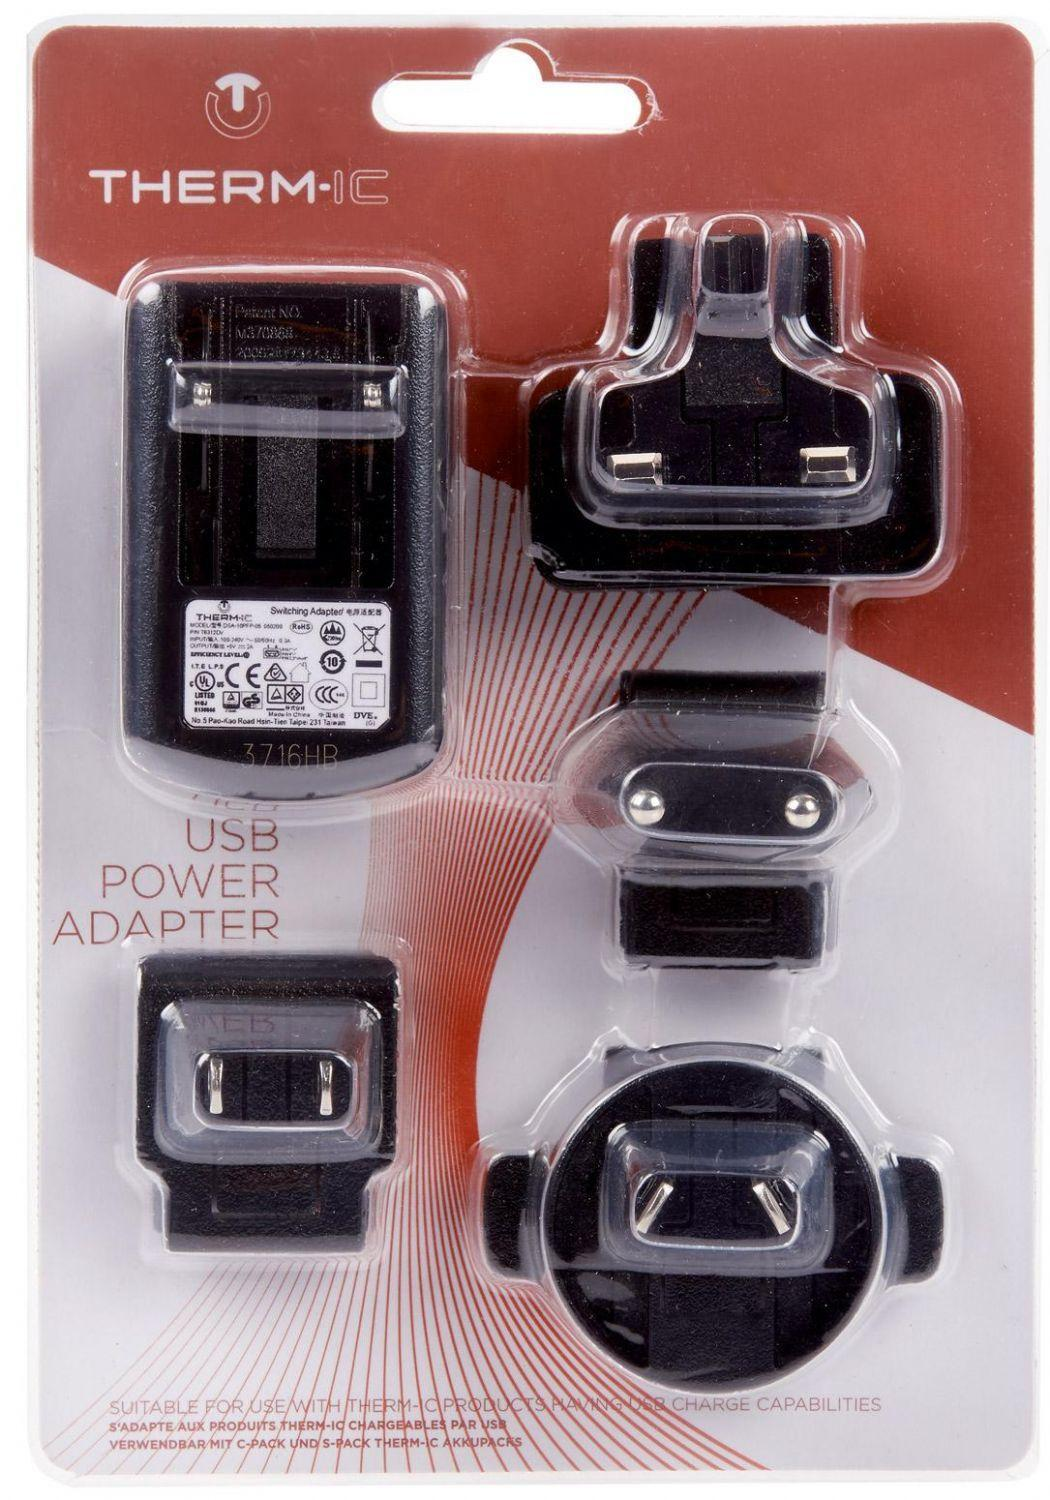 therm-ic-usb-power-adapter-mit-4-anschl-uuml-ssen-farbe-uni-